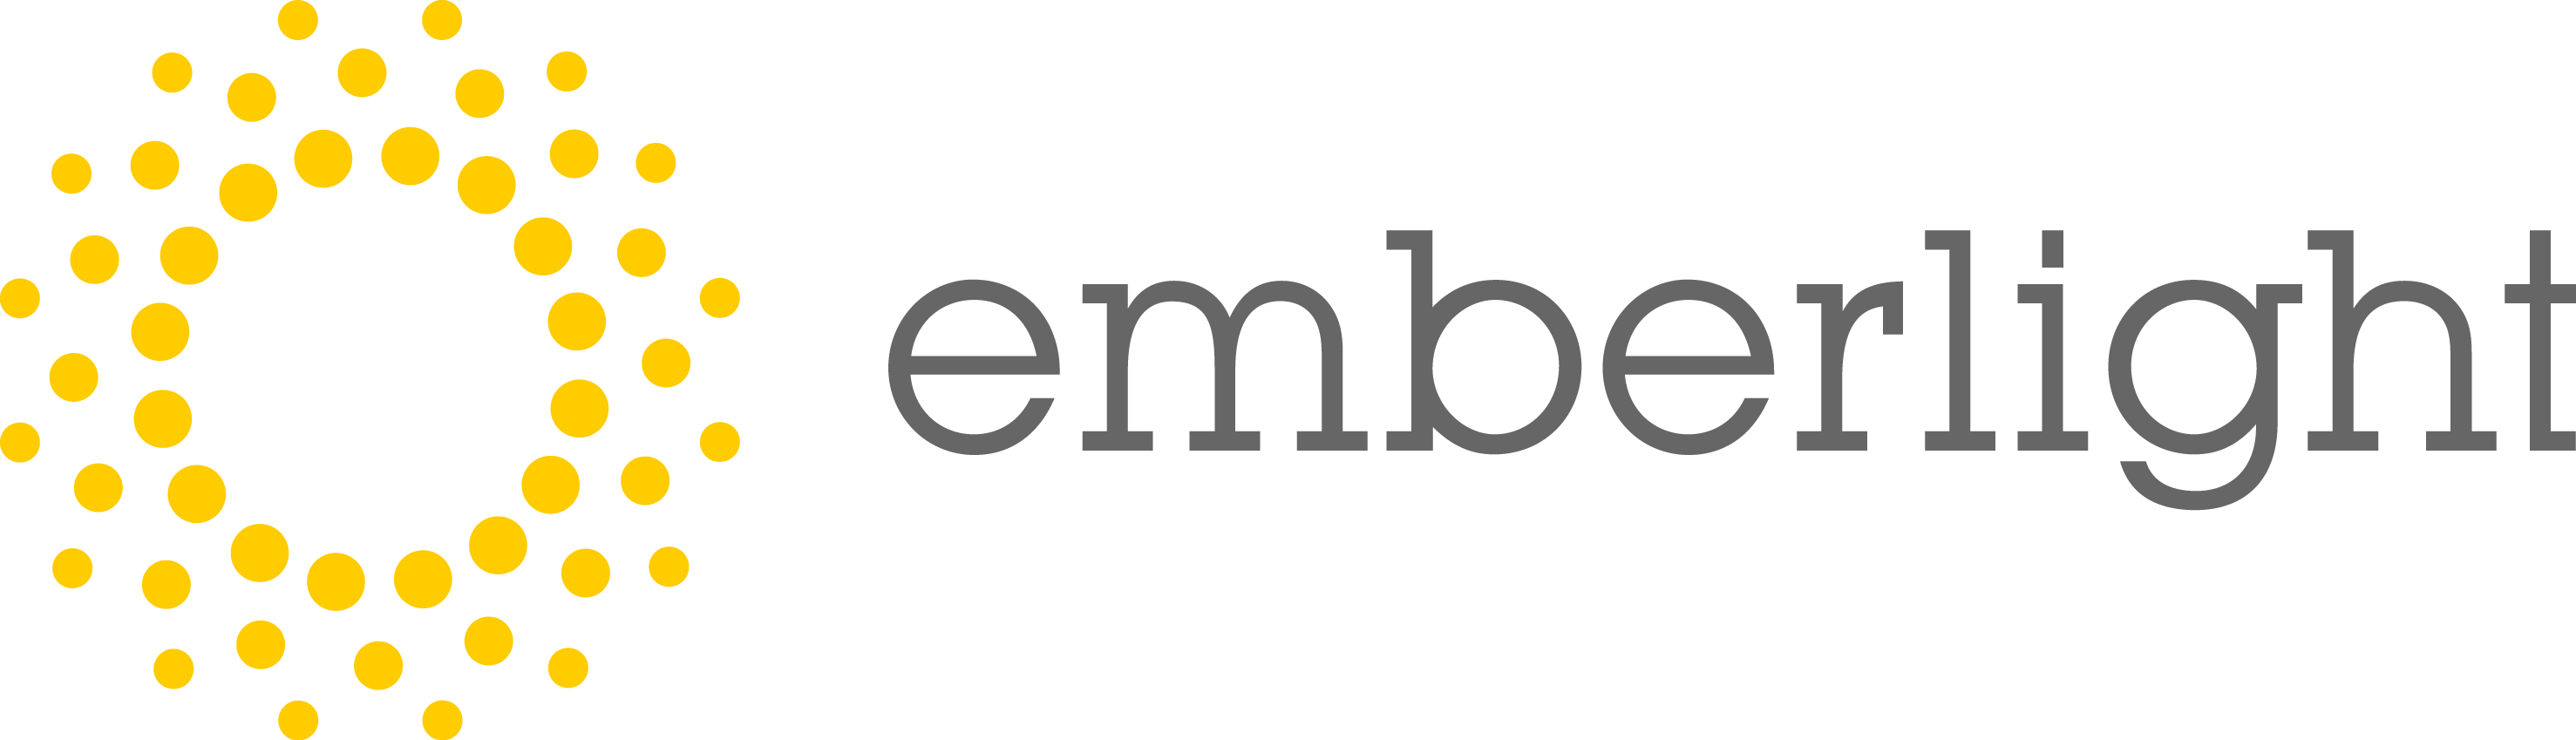 Emberlight uses PubNub to enable users to remote control WIFI-enabled light sockets